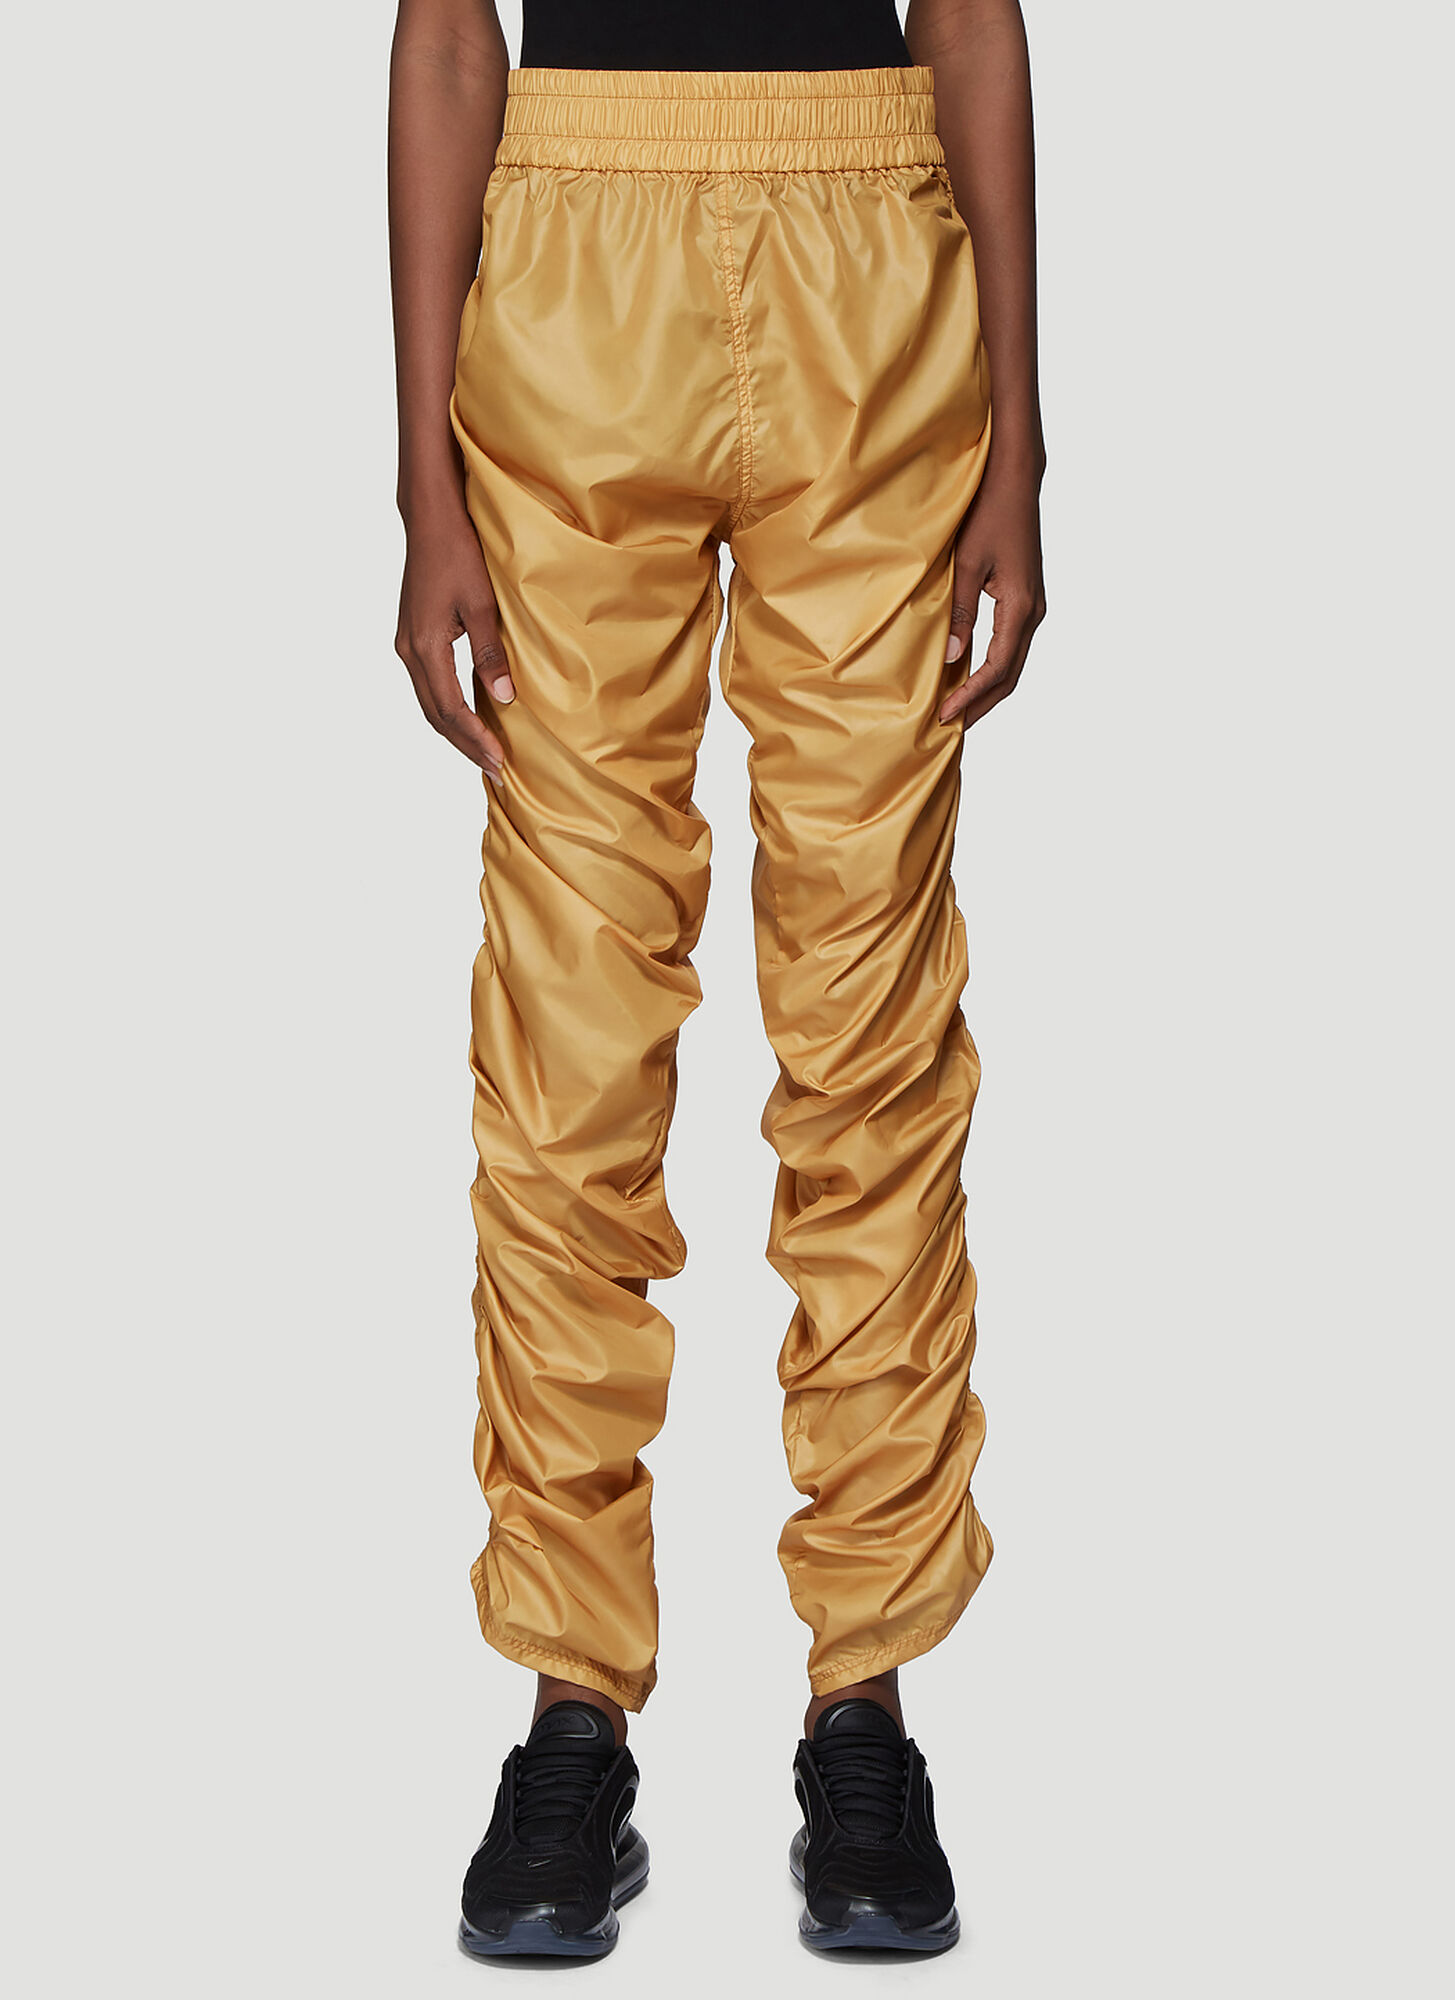 Laerke Andersen Compression Track Pants in Yellow